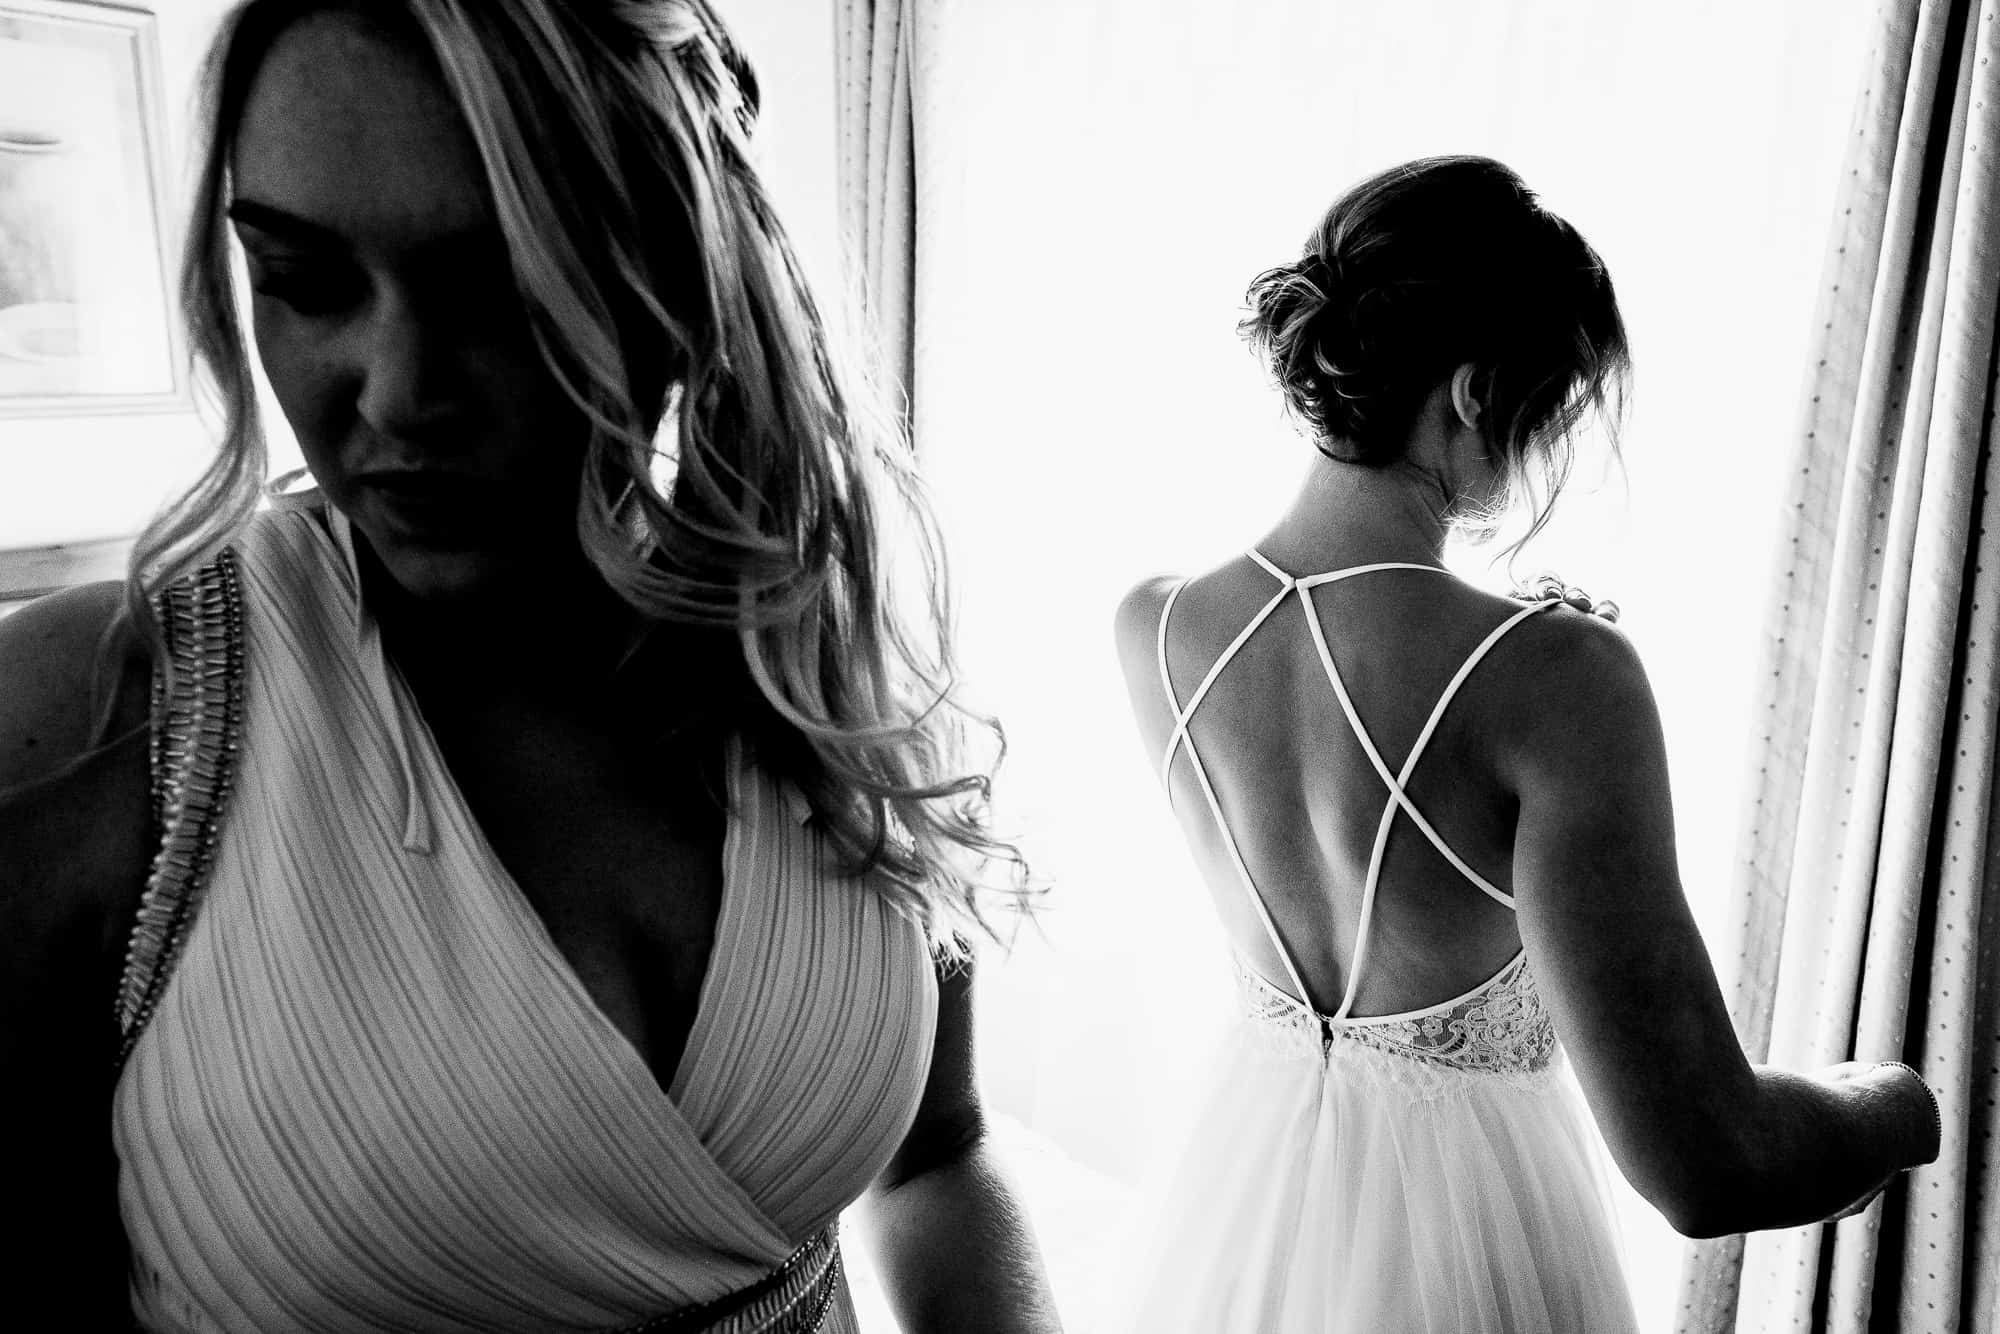 algarve-wedding-photographer-matt-tyler-0020